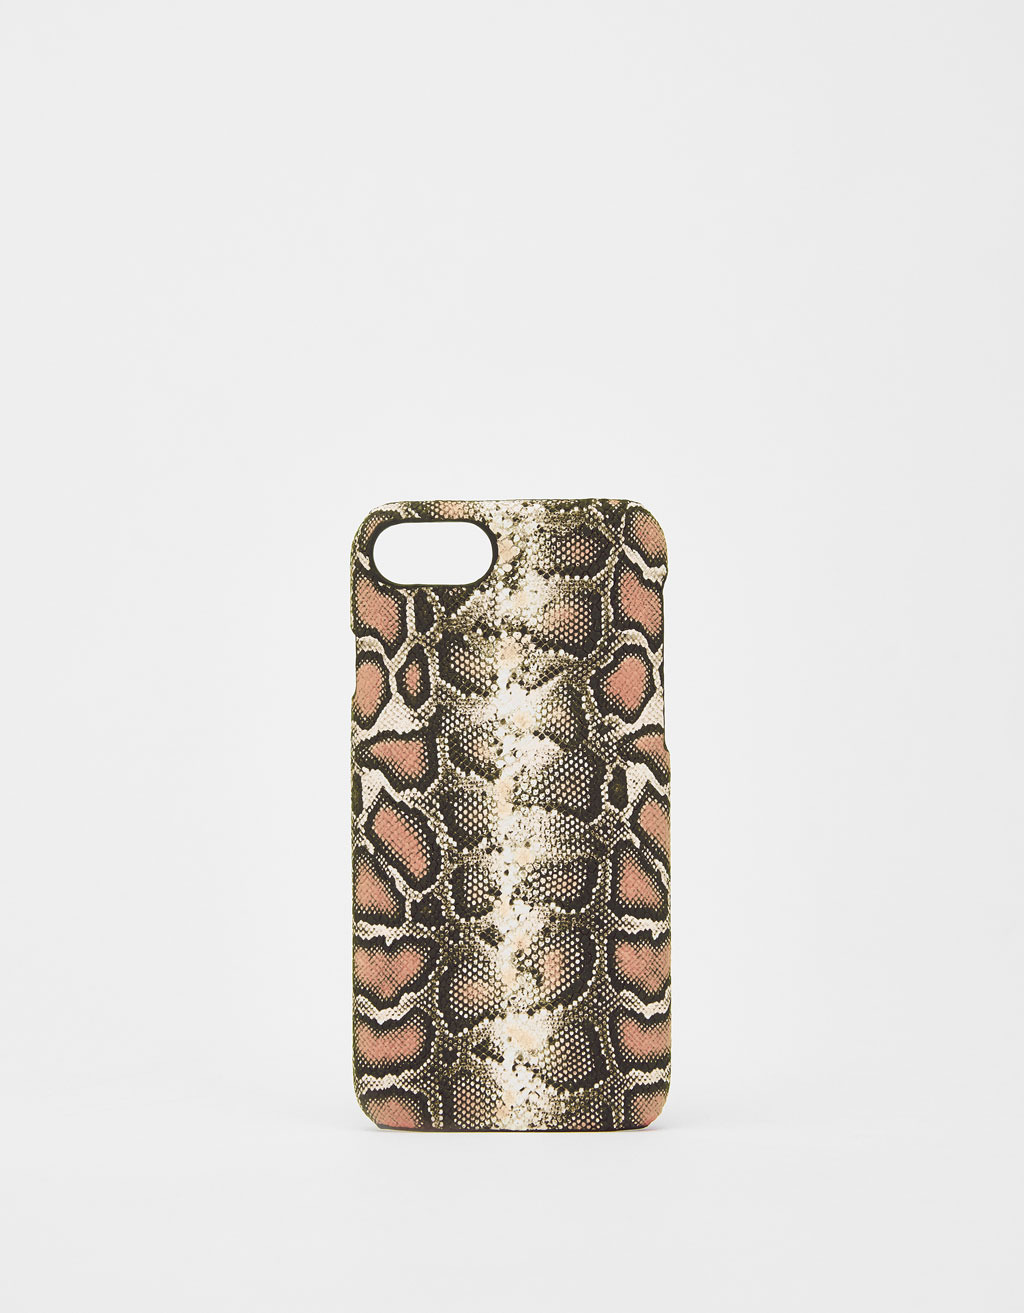 Snakeskin iPhone 6/6s/7/8 case